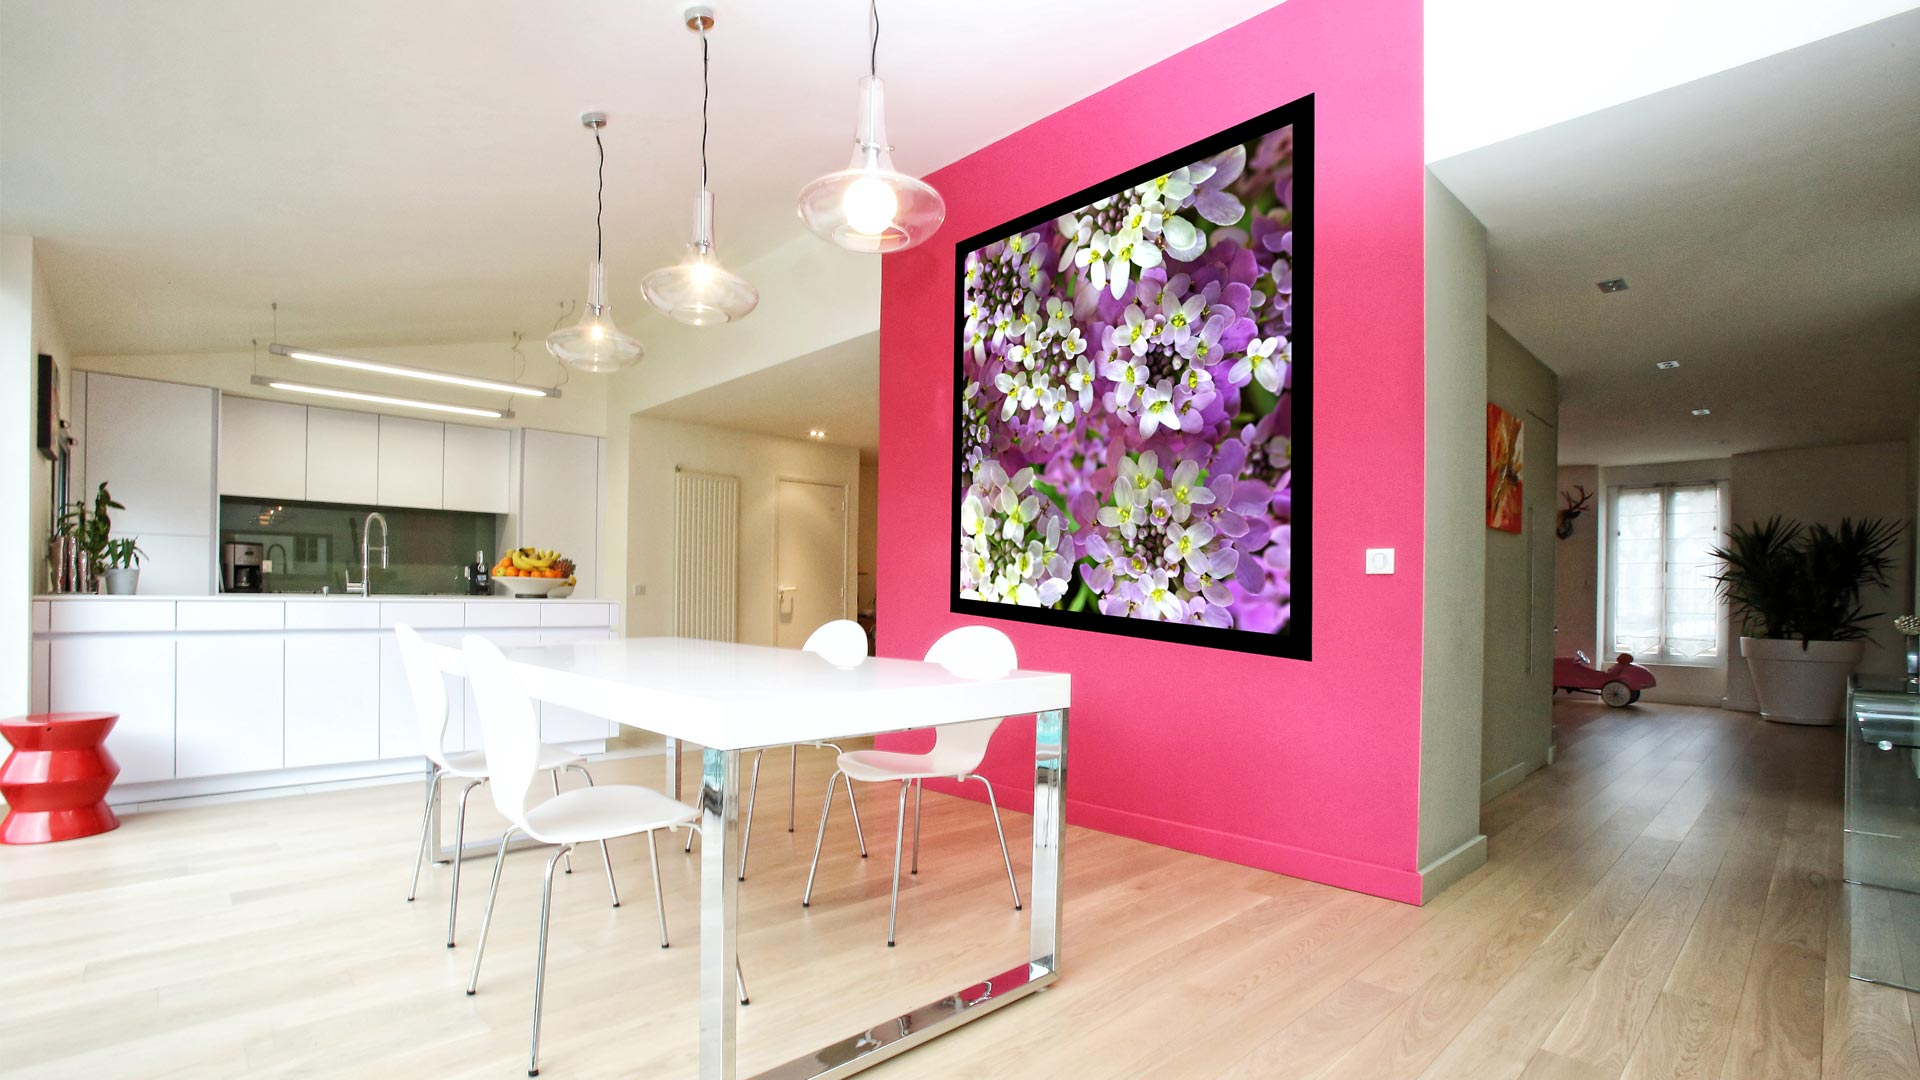 Photo decoration interieure meilleures images d for Interieur et deco